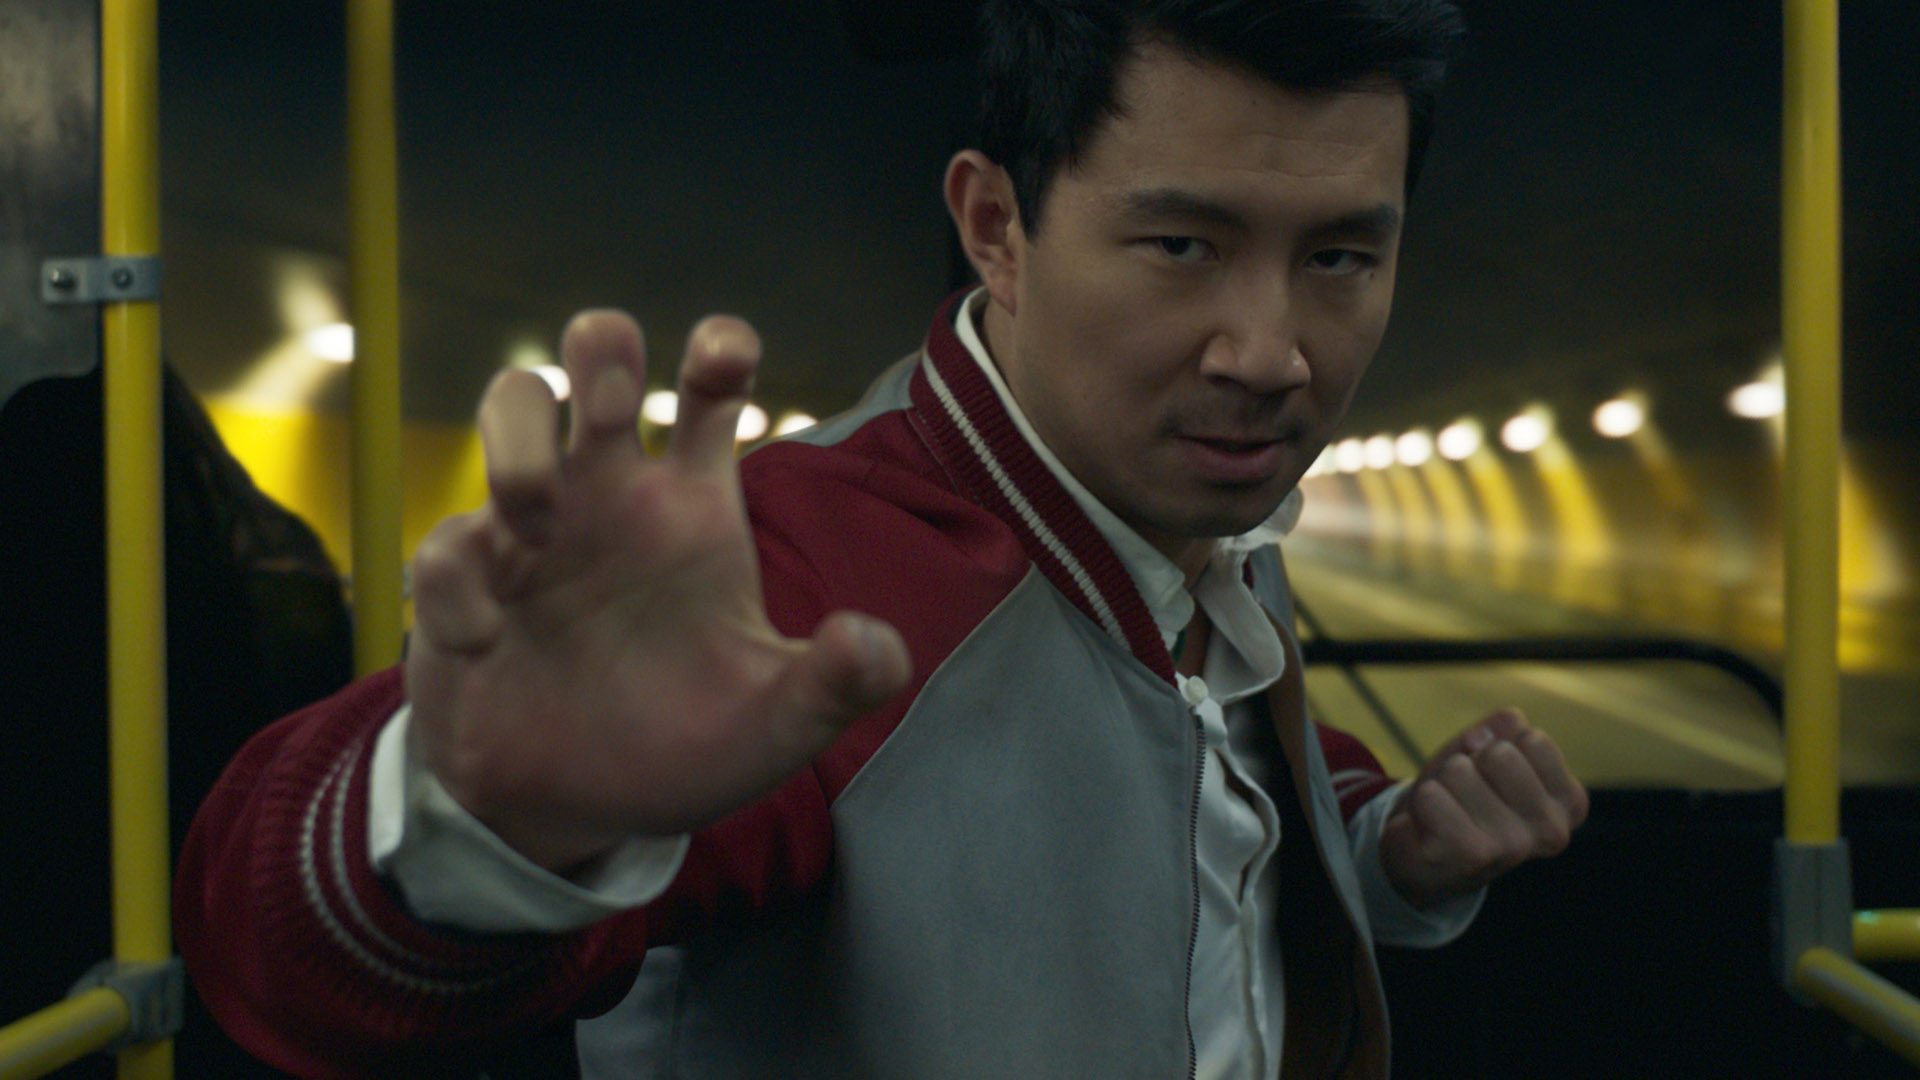 Simu Liu as the titular character in Marvel's Shang-Chi and the Legend of the Ten Rings